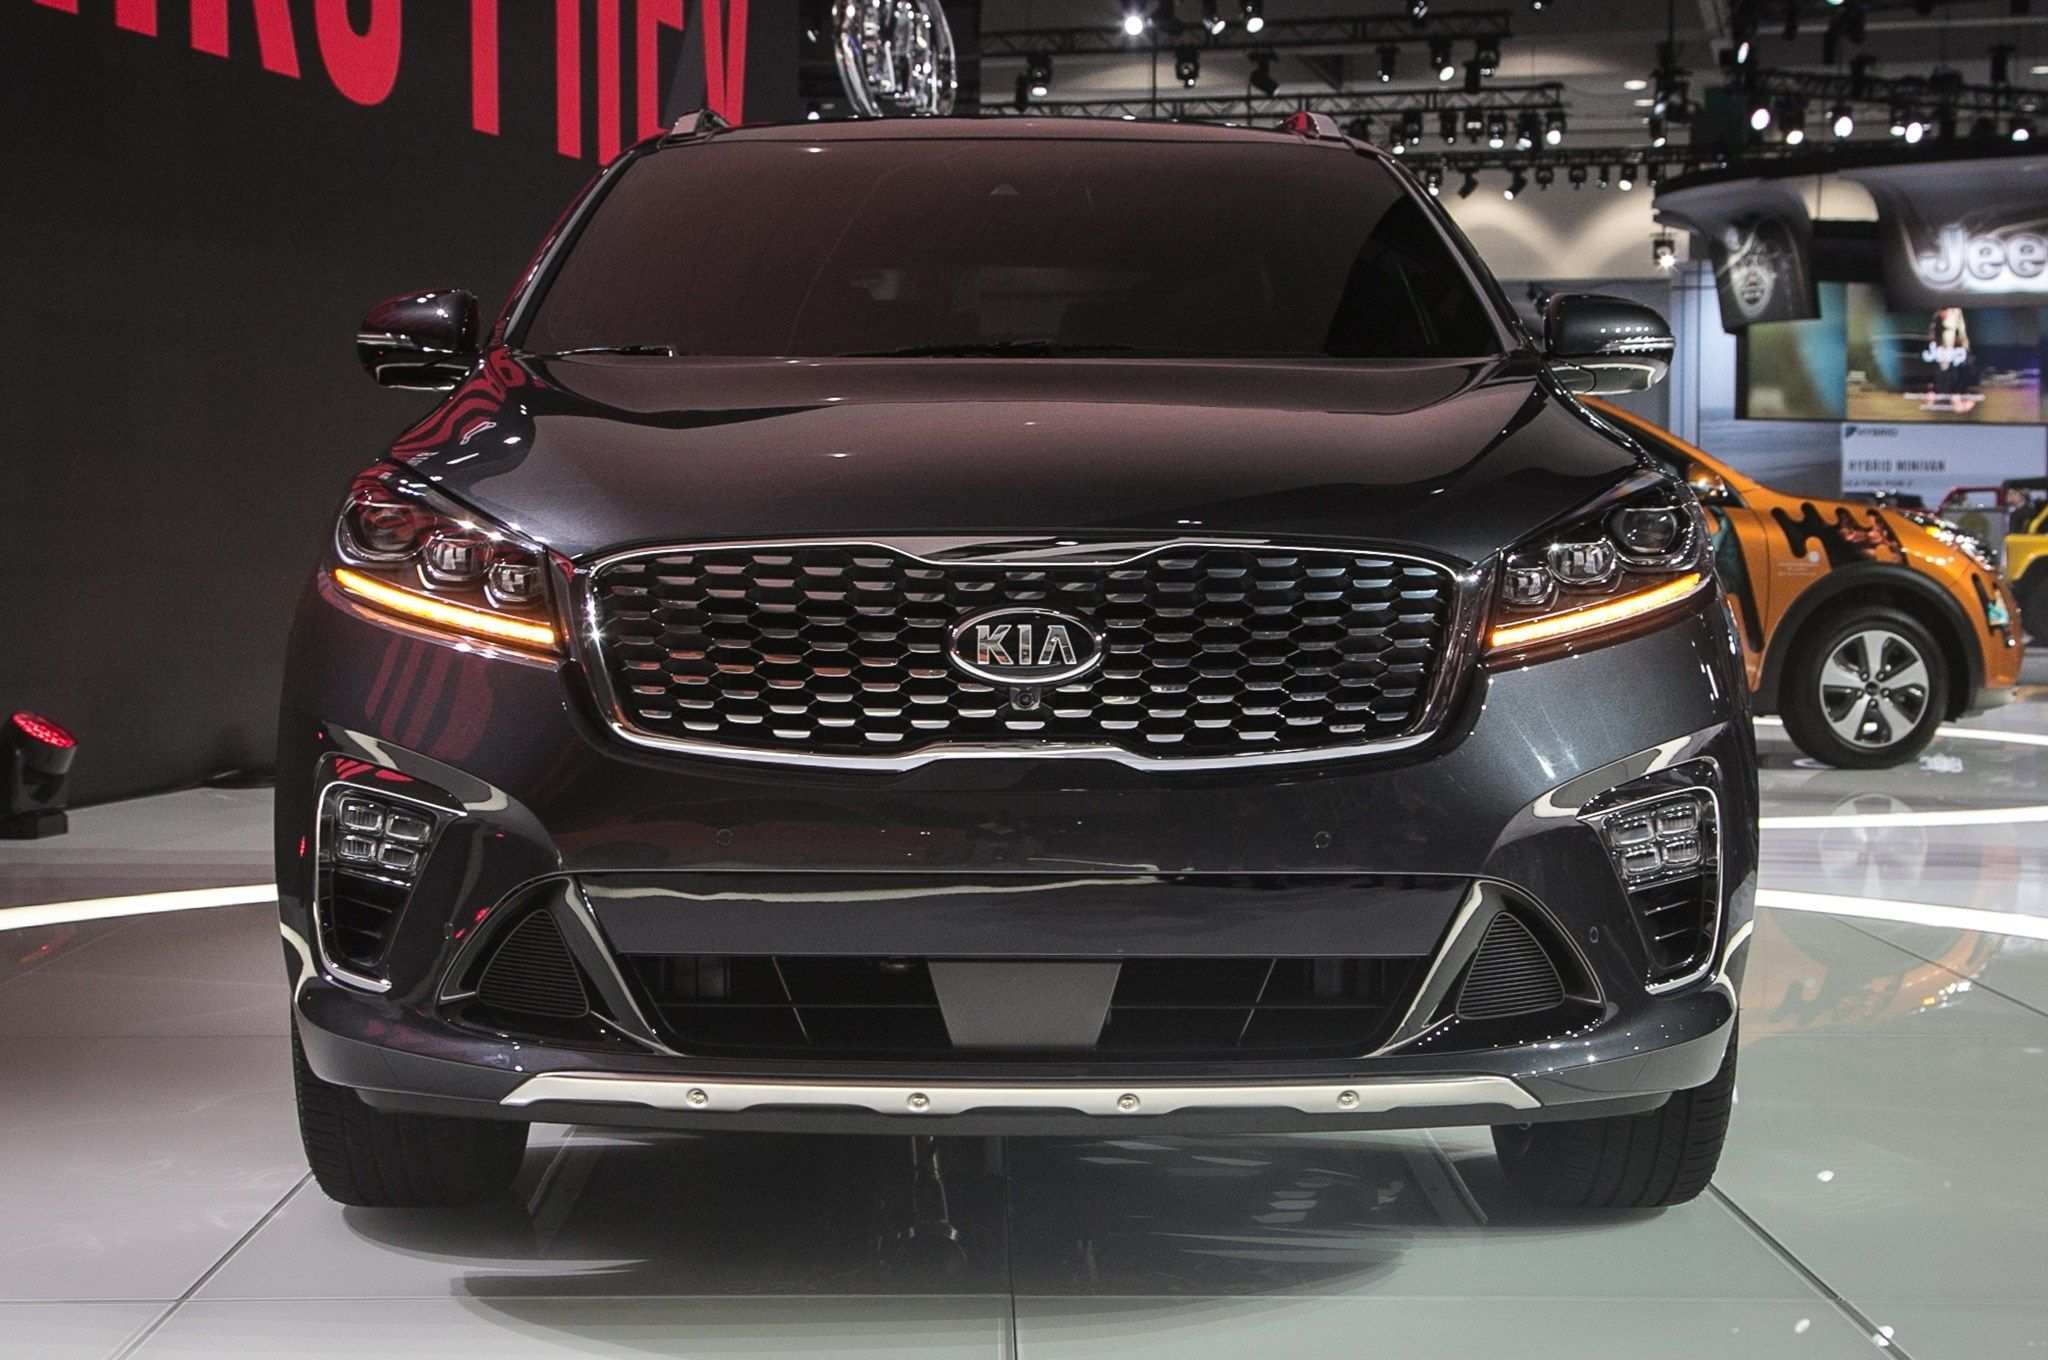 85 Great Kia Sorento 2020 Dimensions Specs for Kia Sorento 2020 Dimensions